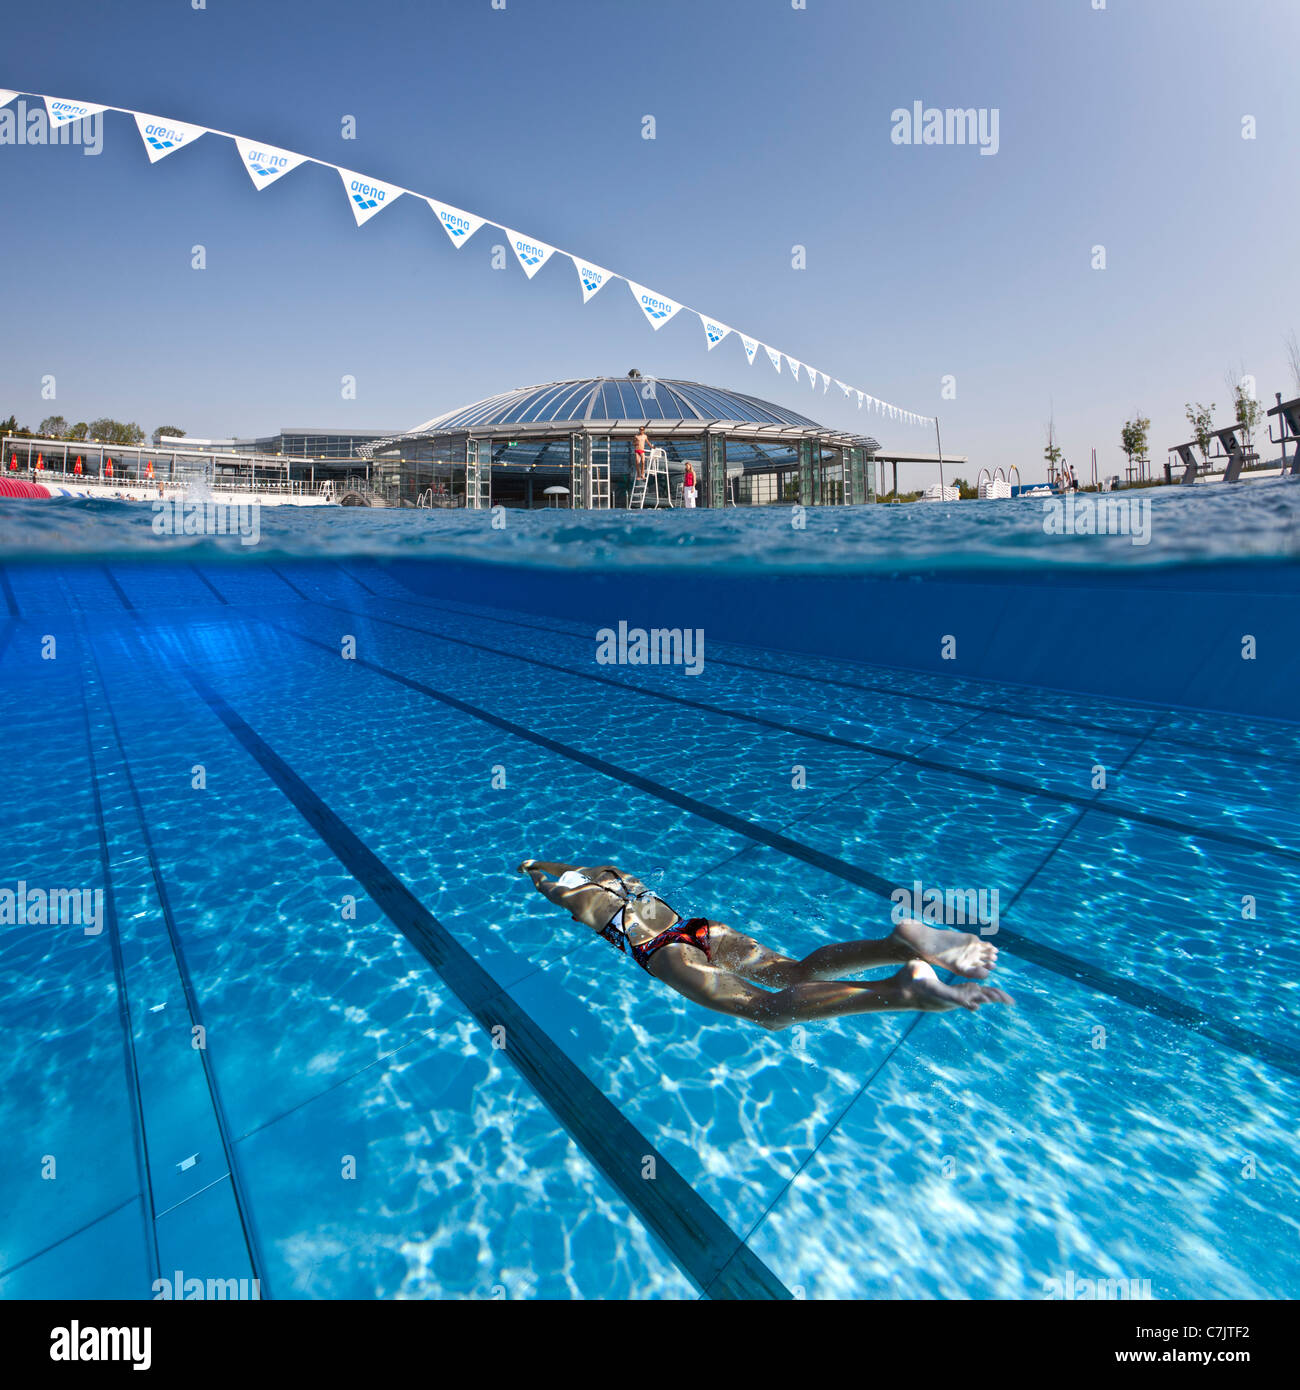 A Female Swimmer Training In An Open Air Olympic Swimming Pool Stock Photo 39137702 Alamy